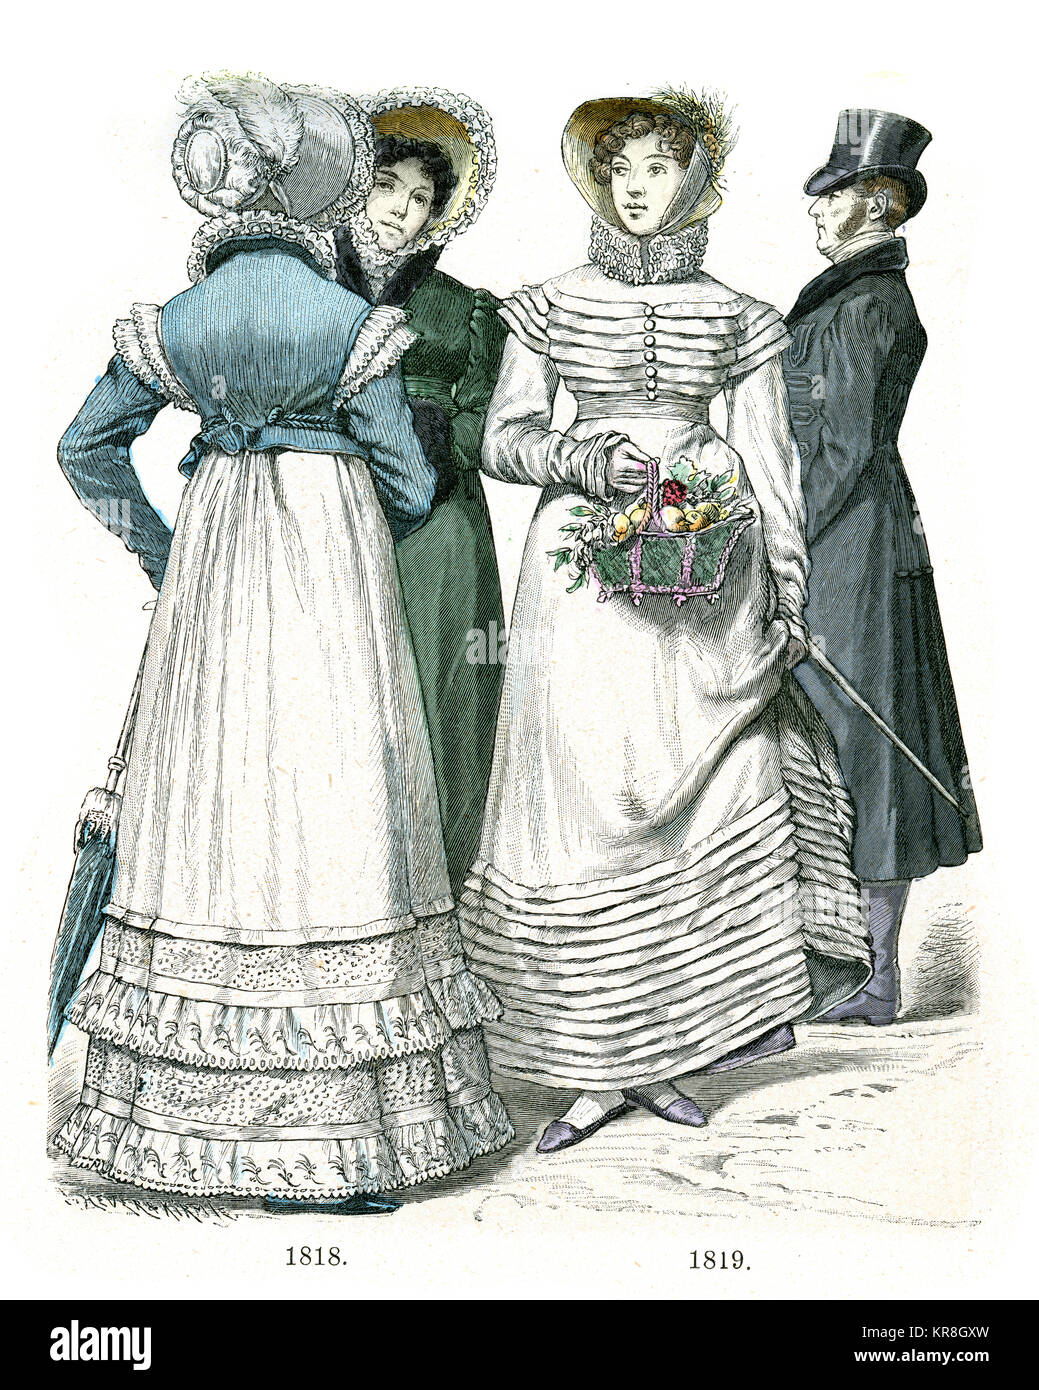 Fashions of the early 19th Century - Stock Image